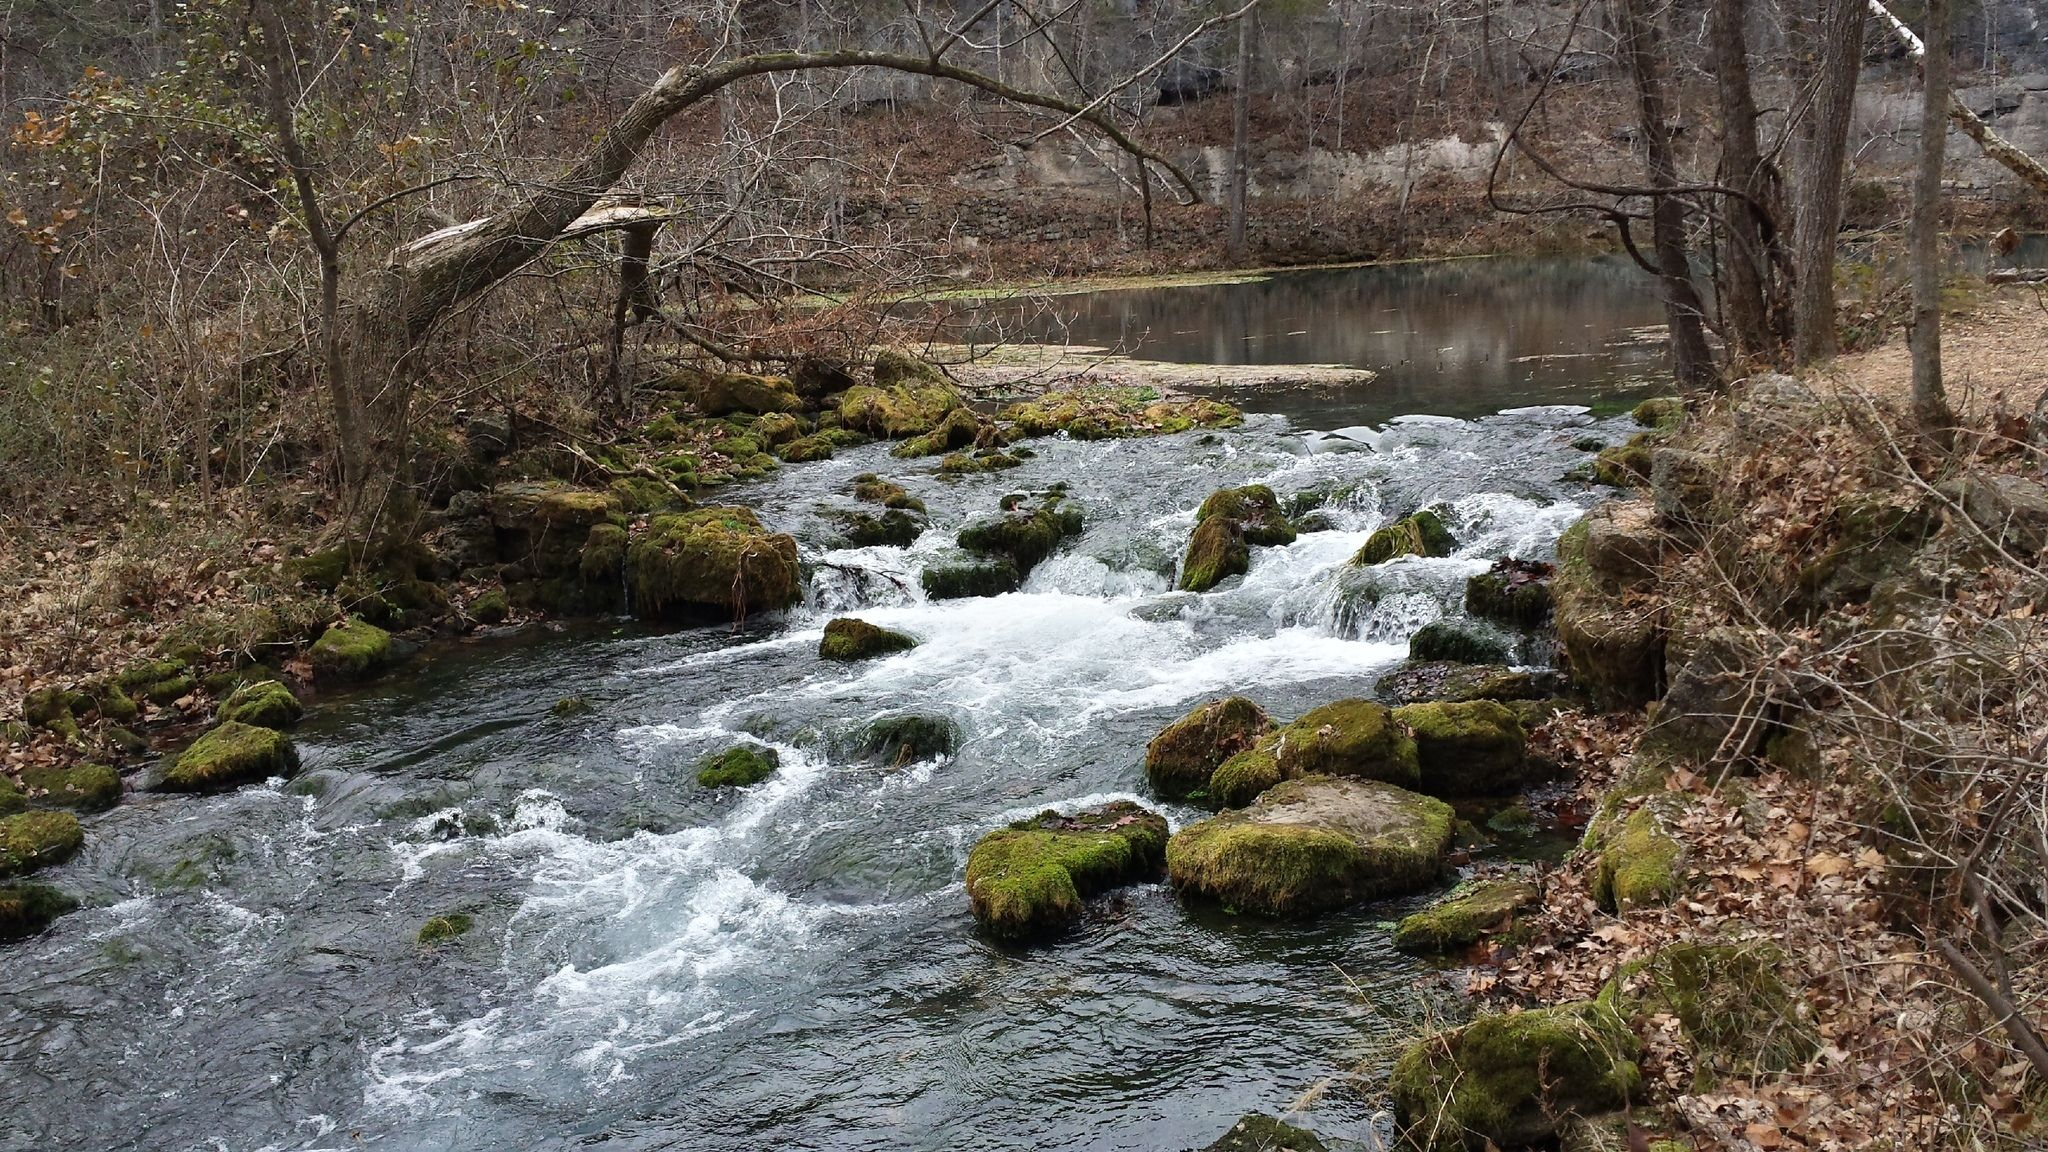 Alley Spring Overlook Trail Is A Beginner-Friendly Waterfall Trail In Missouri That's Great For A Family Hike